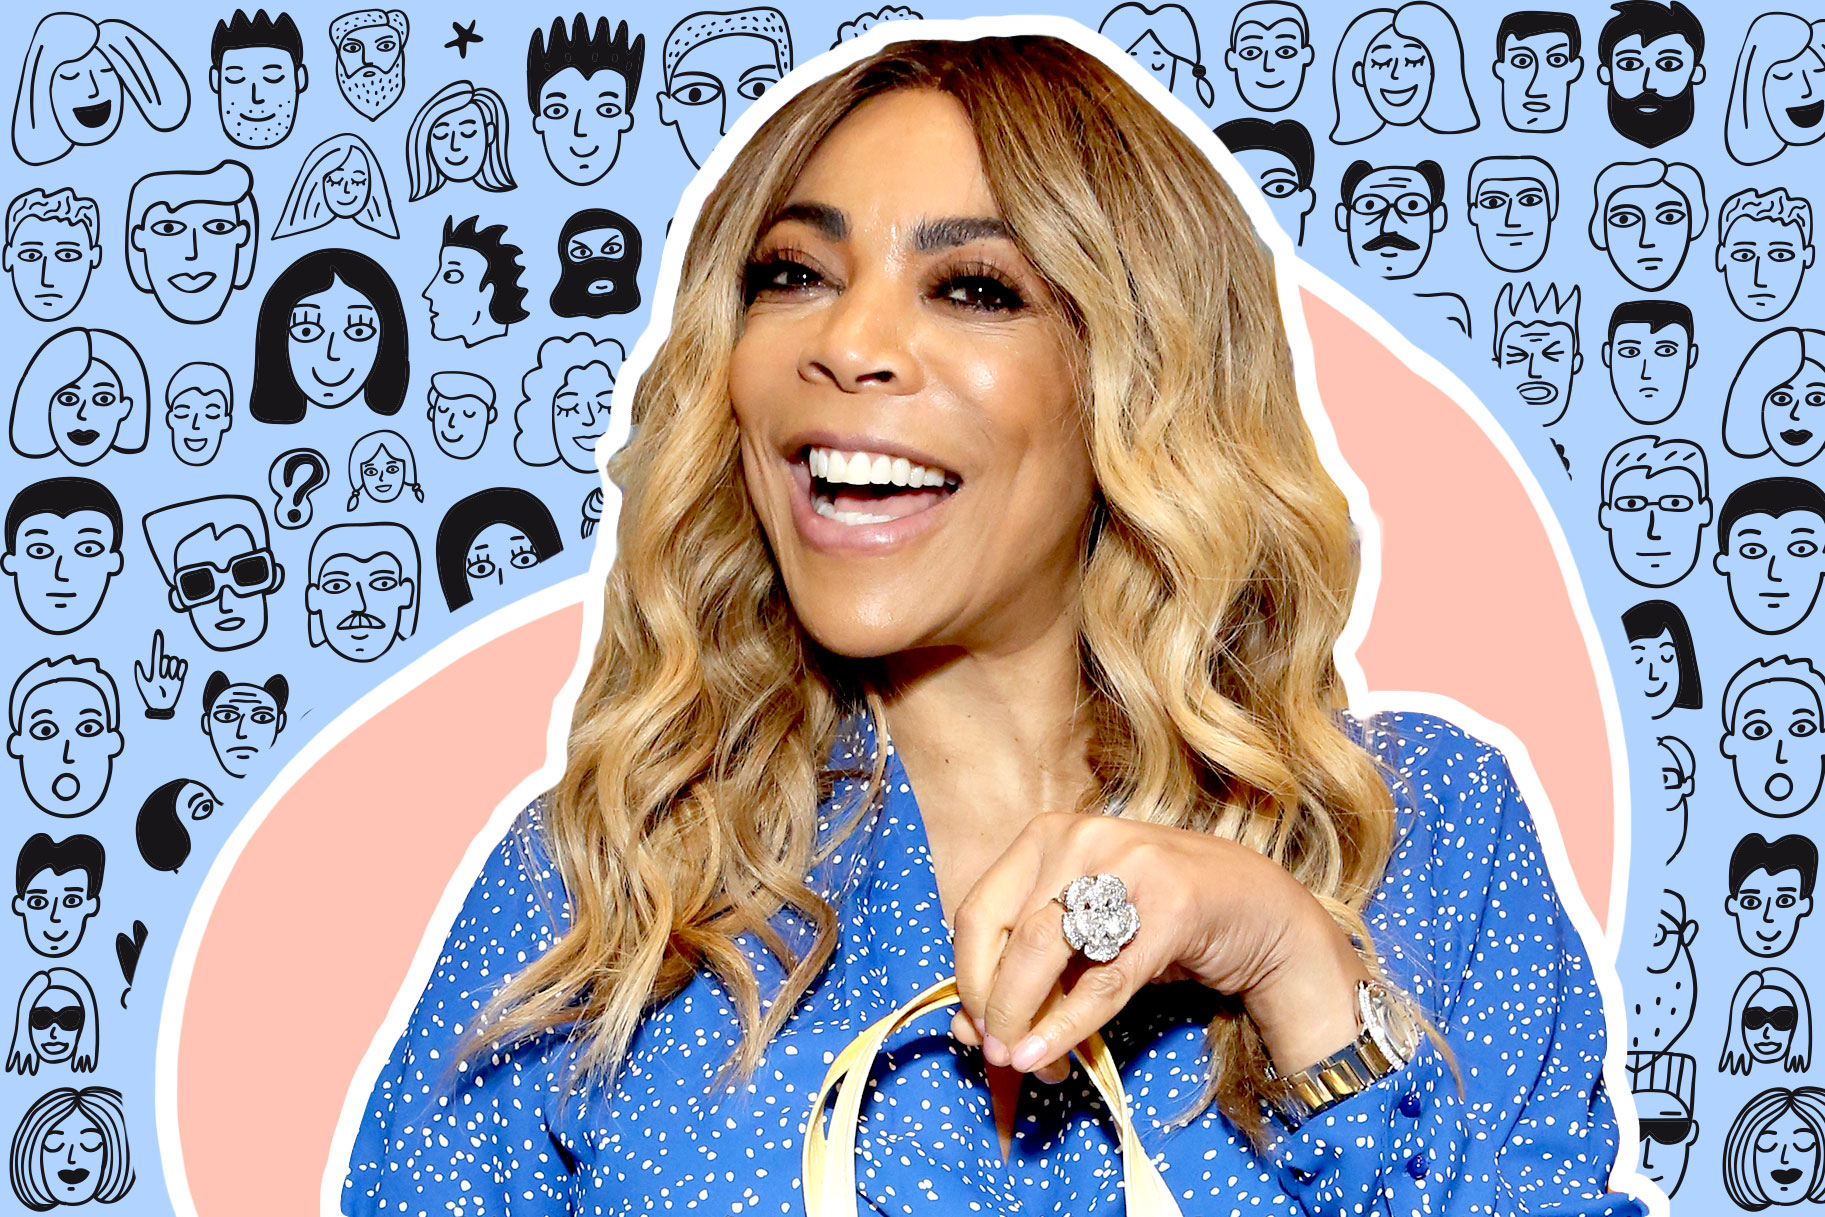 Wendy Williams Hangs Out With The Kardashians - See The Video That Has People Laughing Their Hearts Out